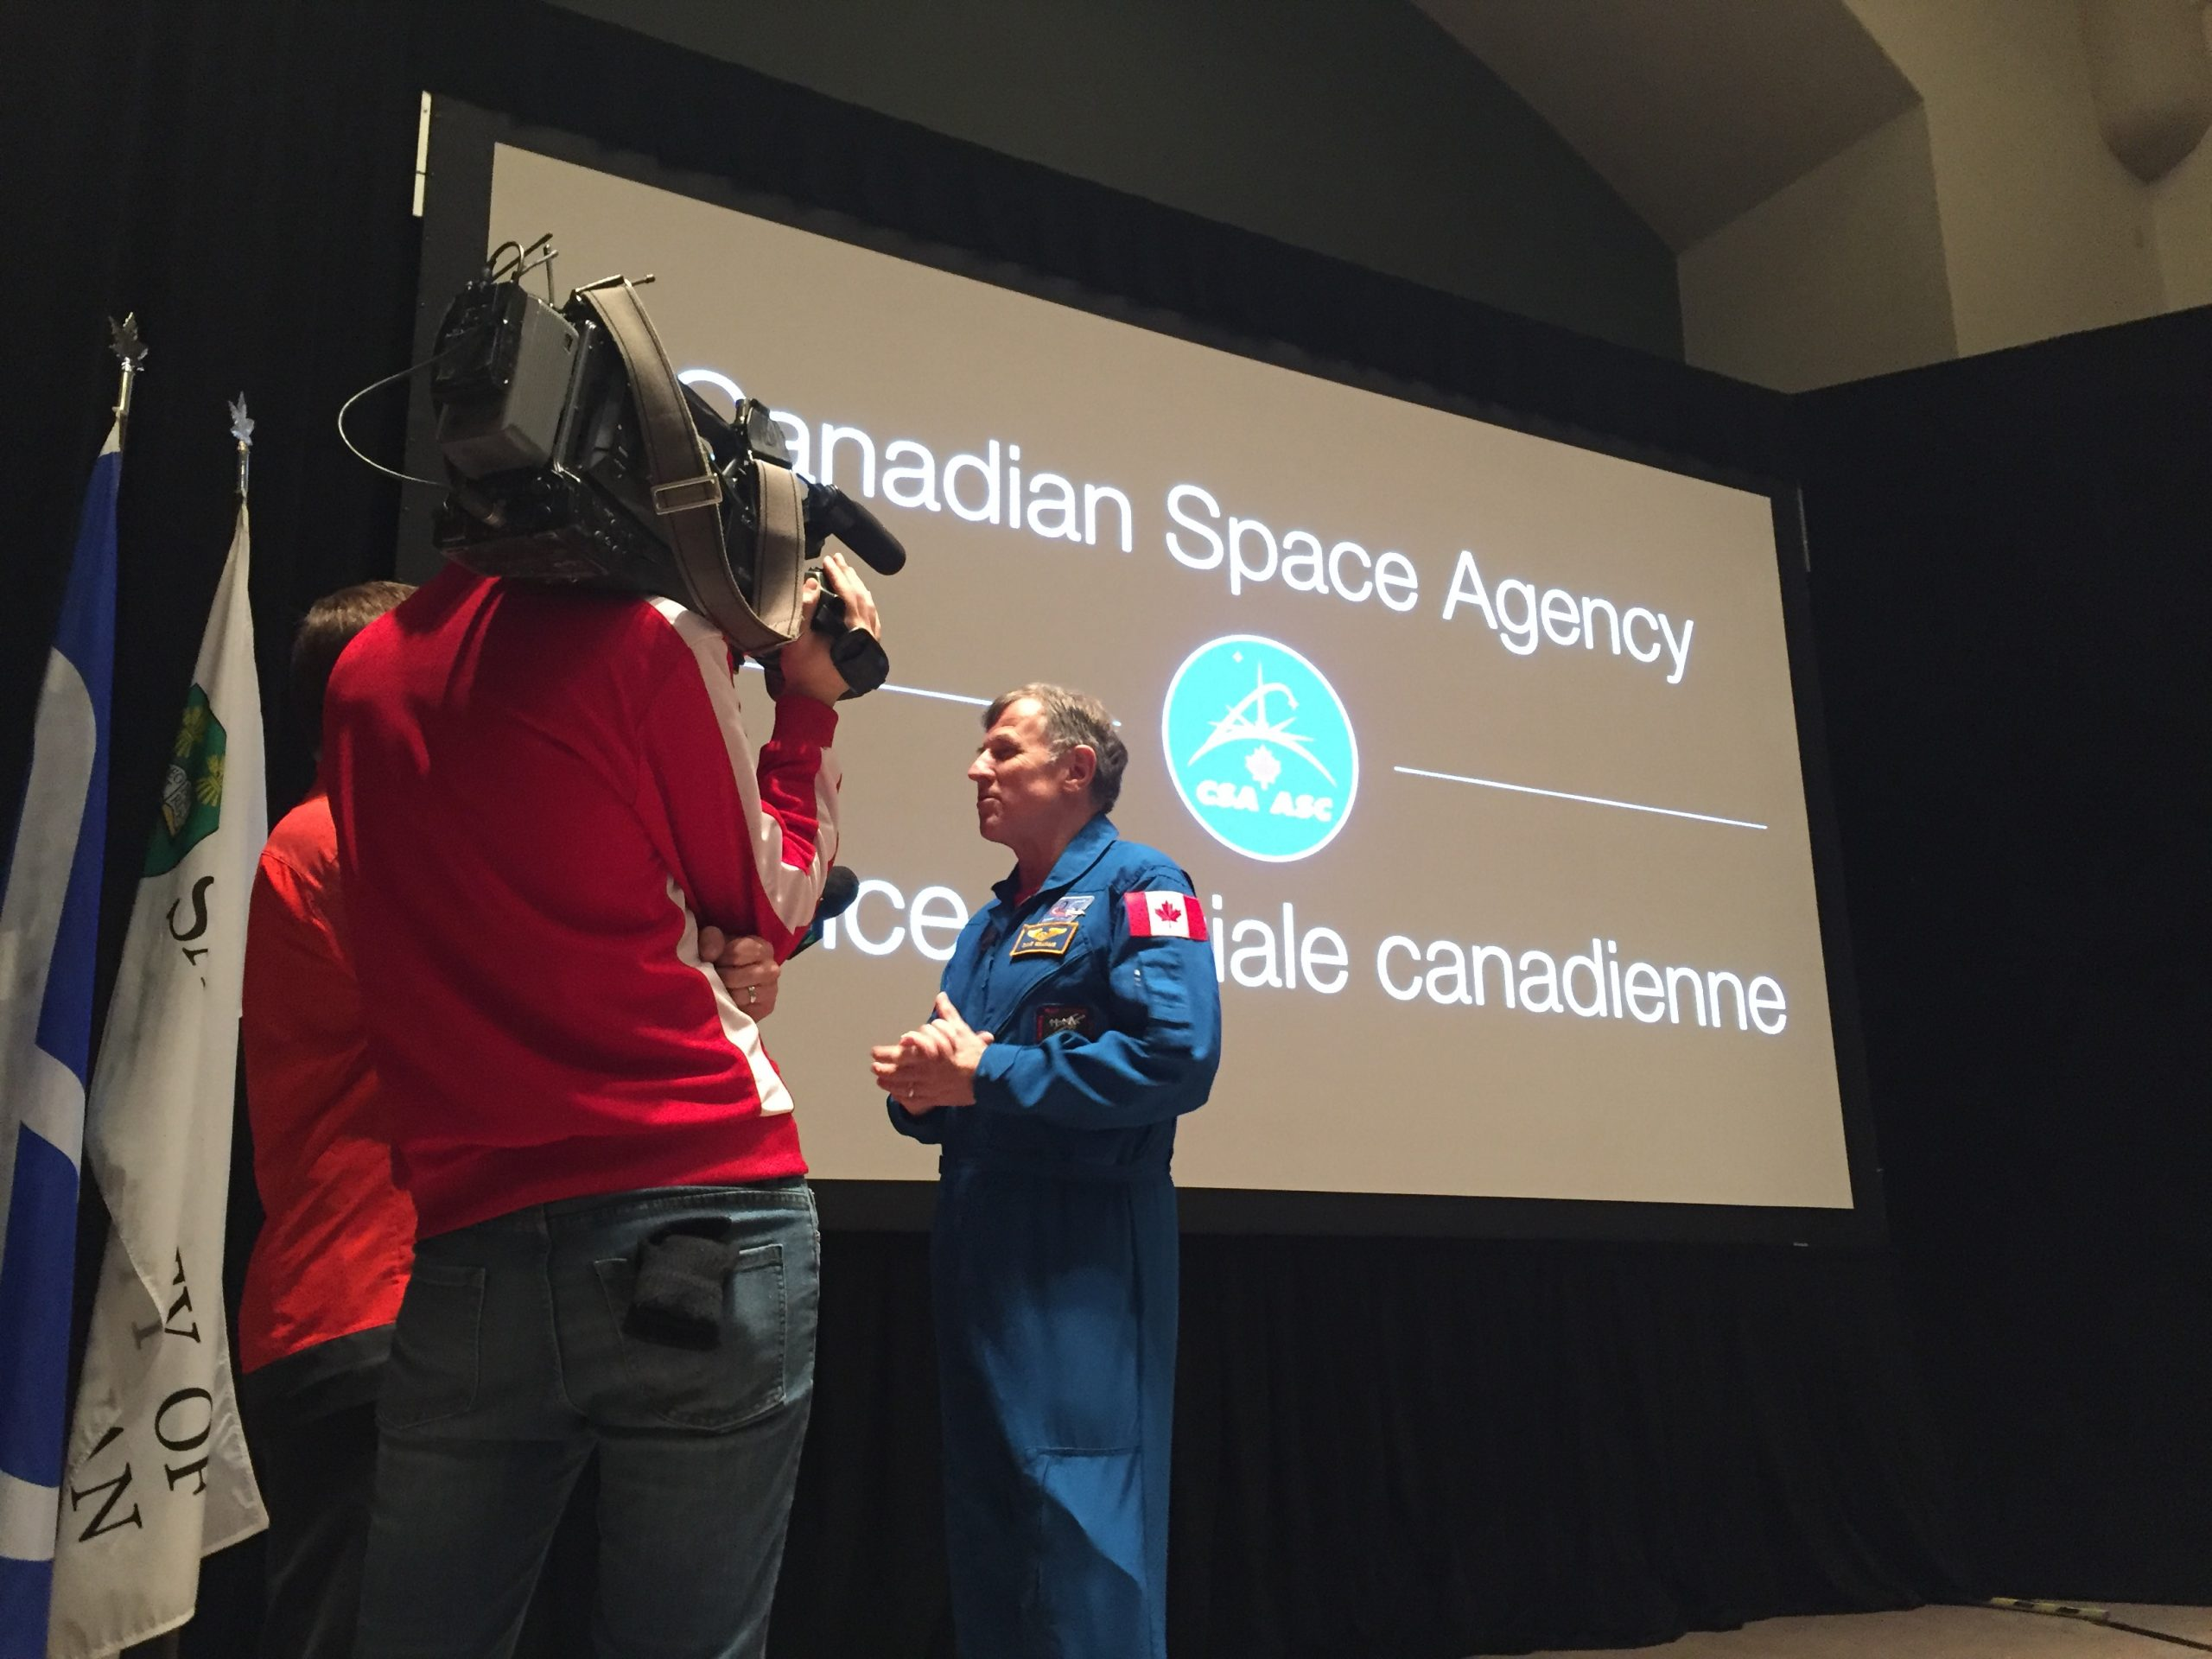 Students Chat with Astronaut Live from the International Space Station